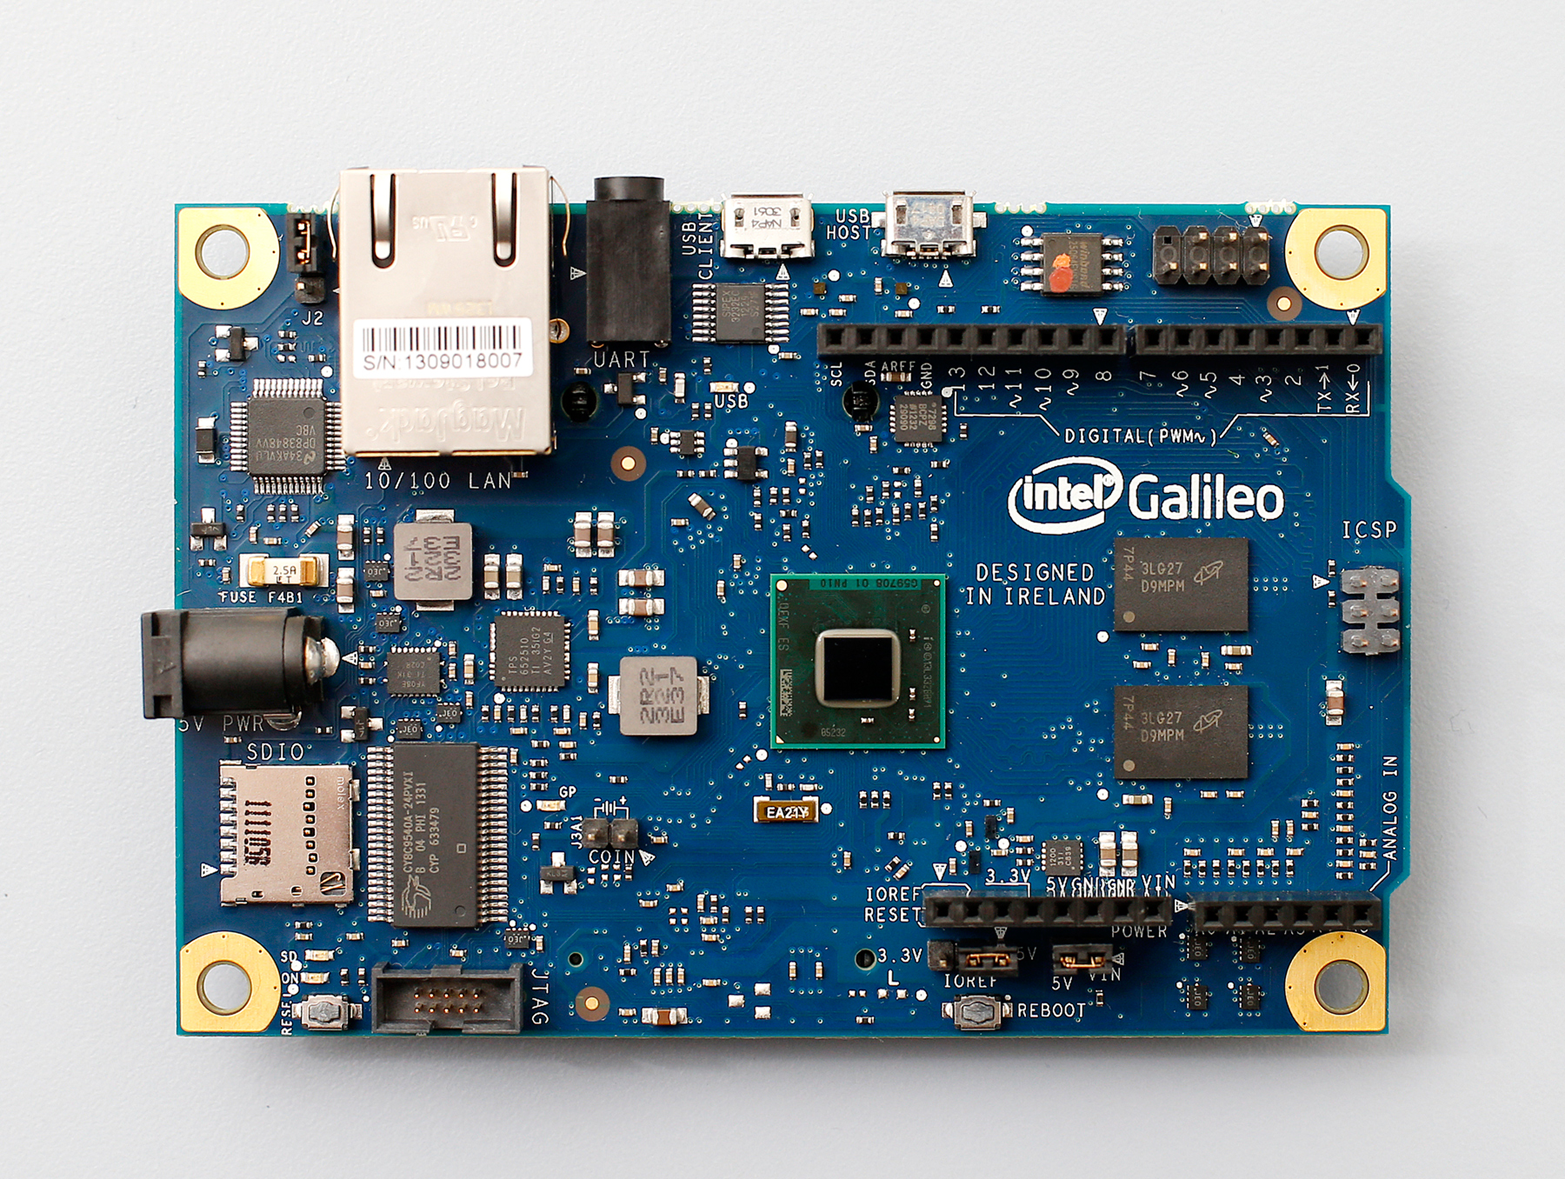 Intel's Galileo is based on the x86 architecture and supports Arduino hardware expansion cards and software libraries (Photo courtesy Intel)